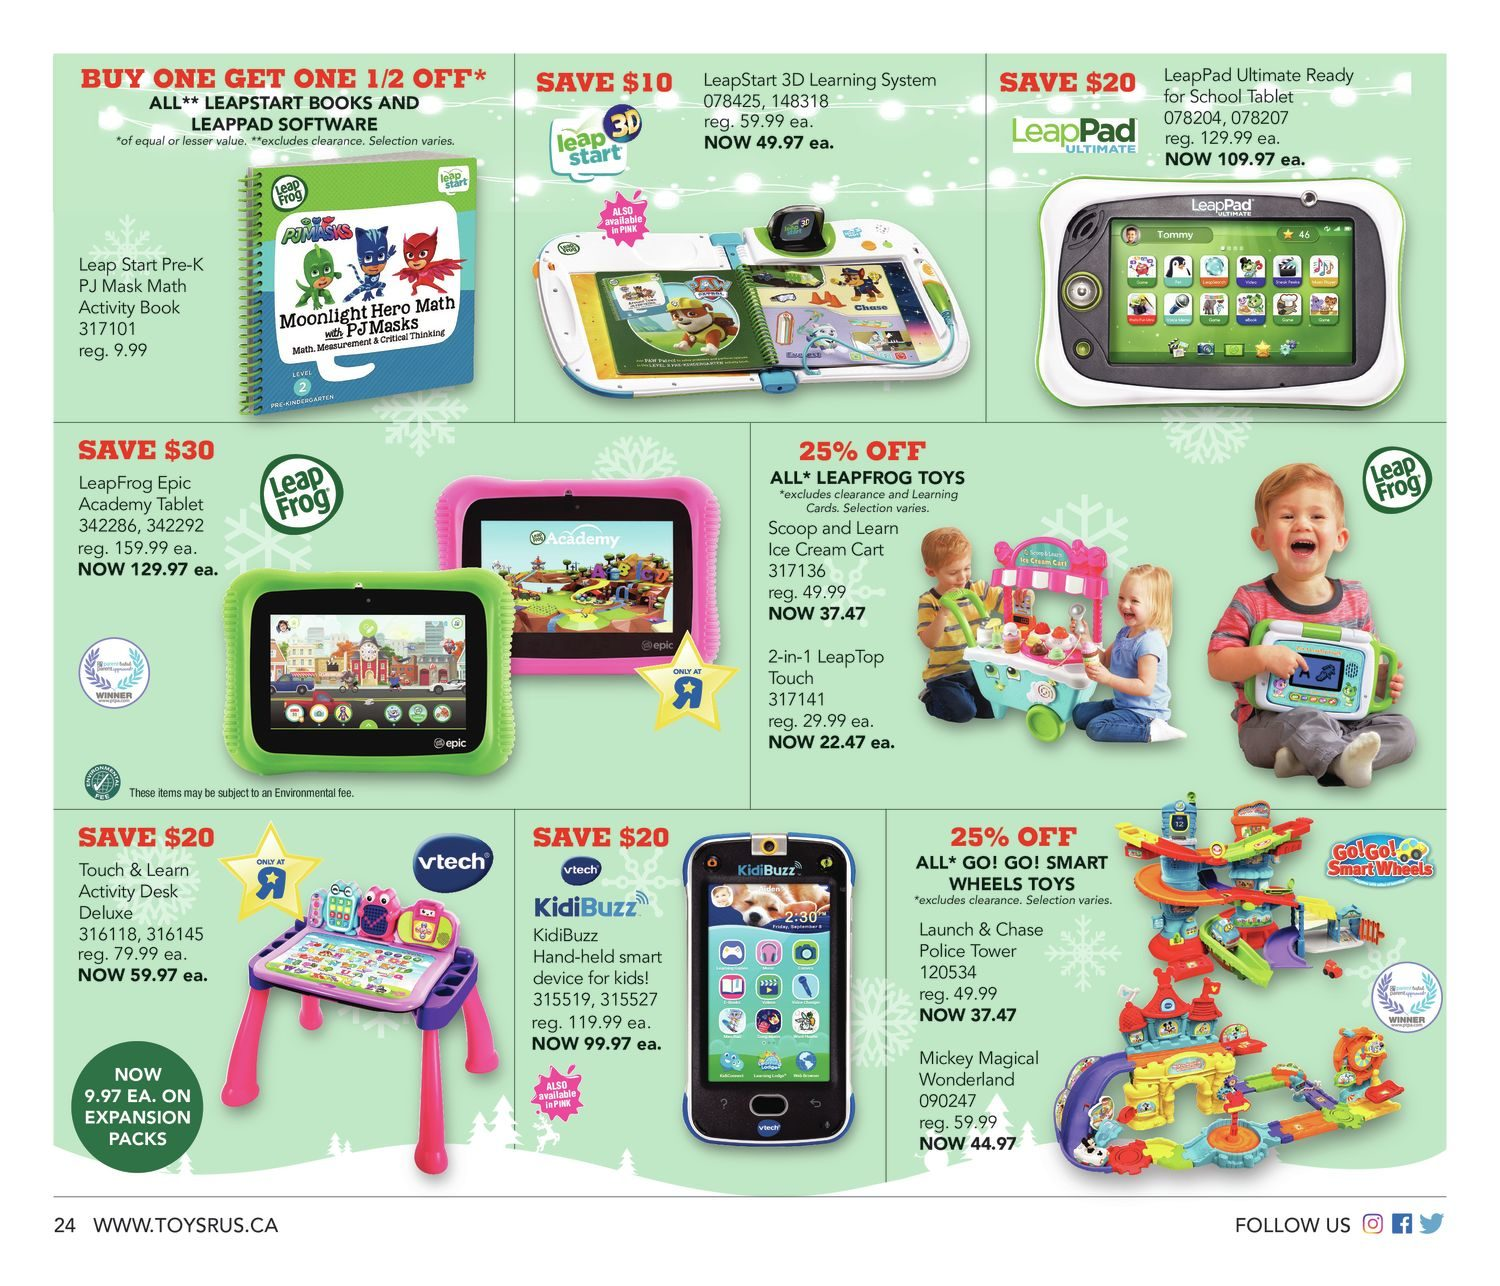 a033a8a57 Toys R Us Weekly Flyer - Weekly - 18 More Sleeps! - Dec 7 – 13 -  RedFlagDeals.com